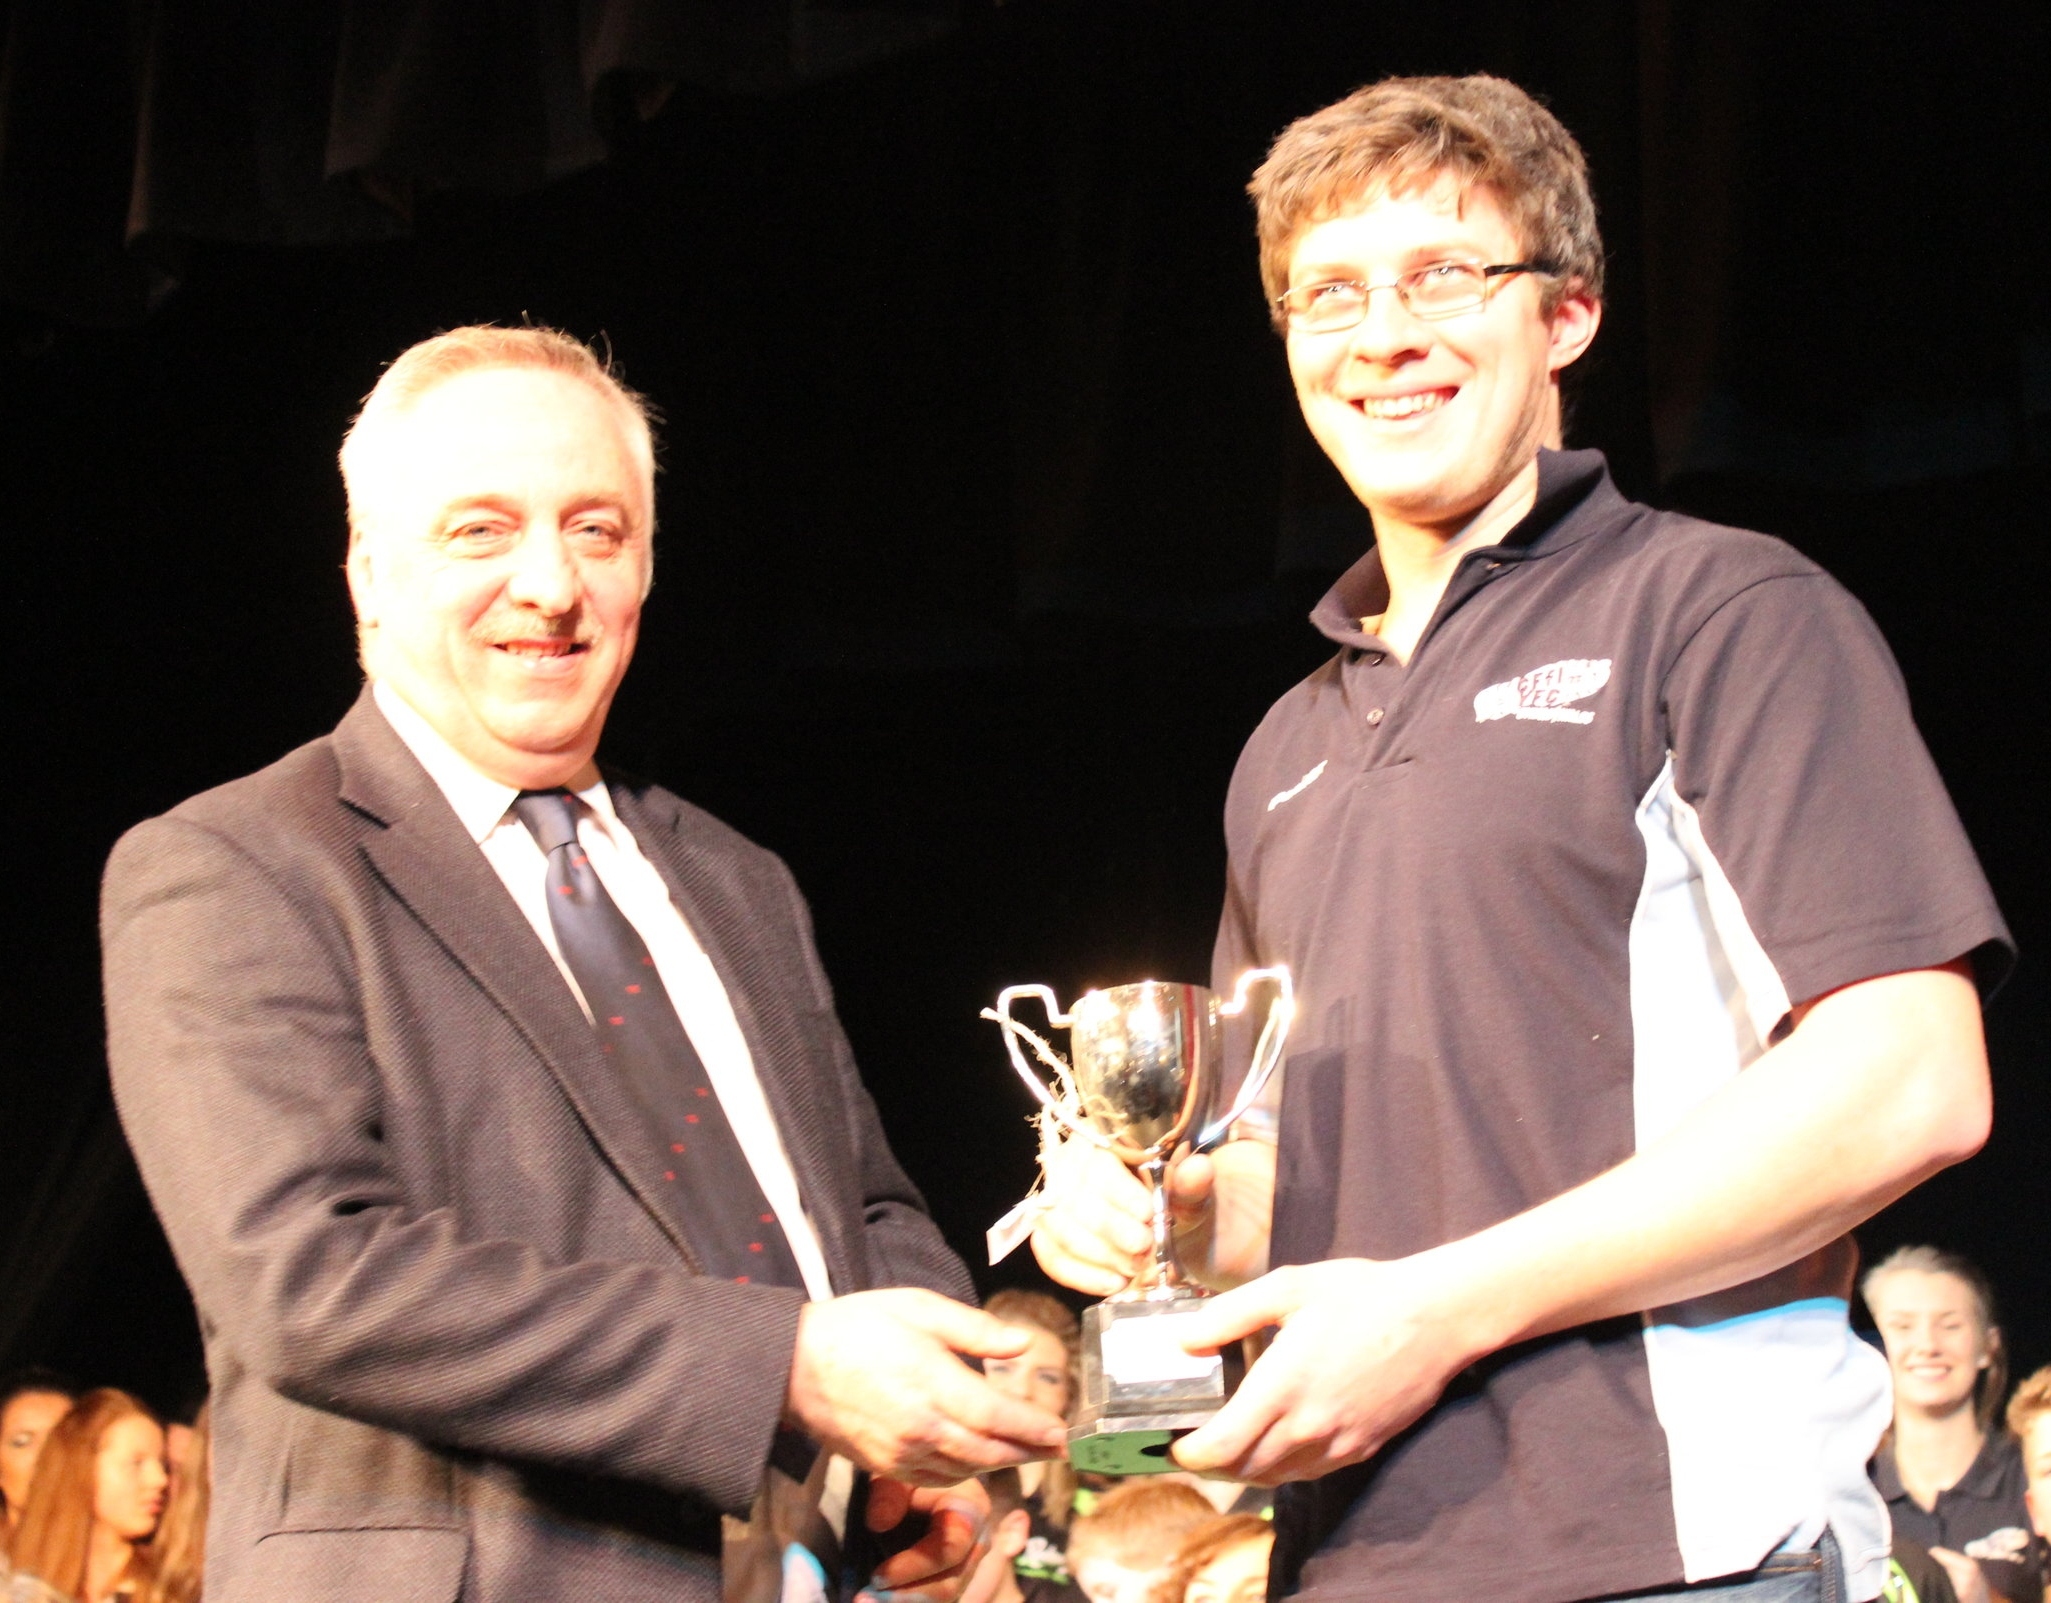 Aled Price - Rhayader YFC - Abbey Cwm Hir Hall Trophy - Best Set